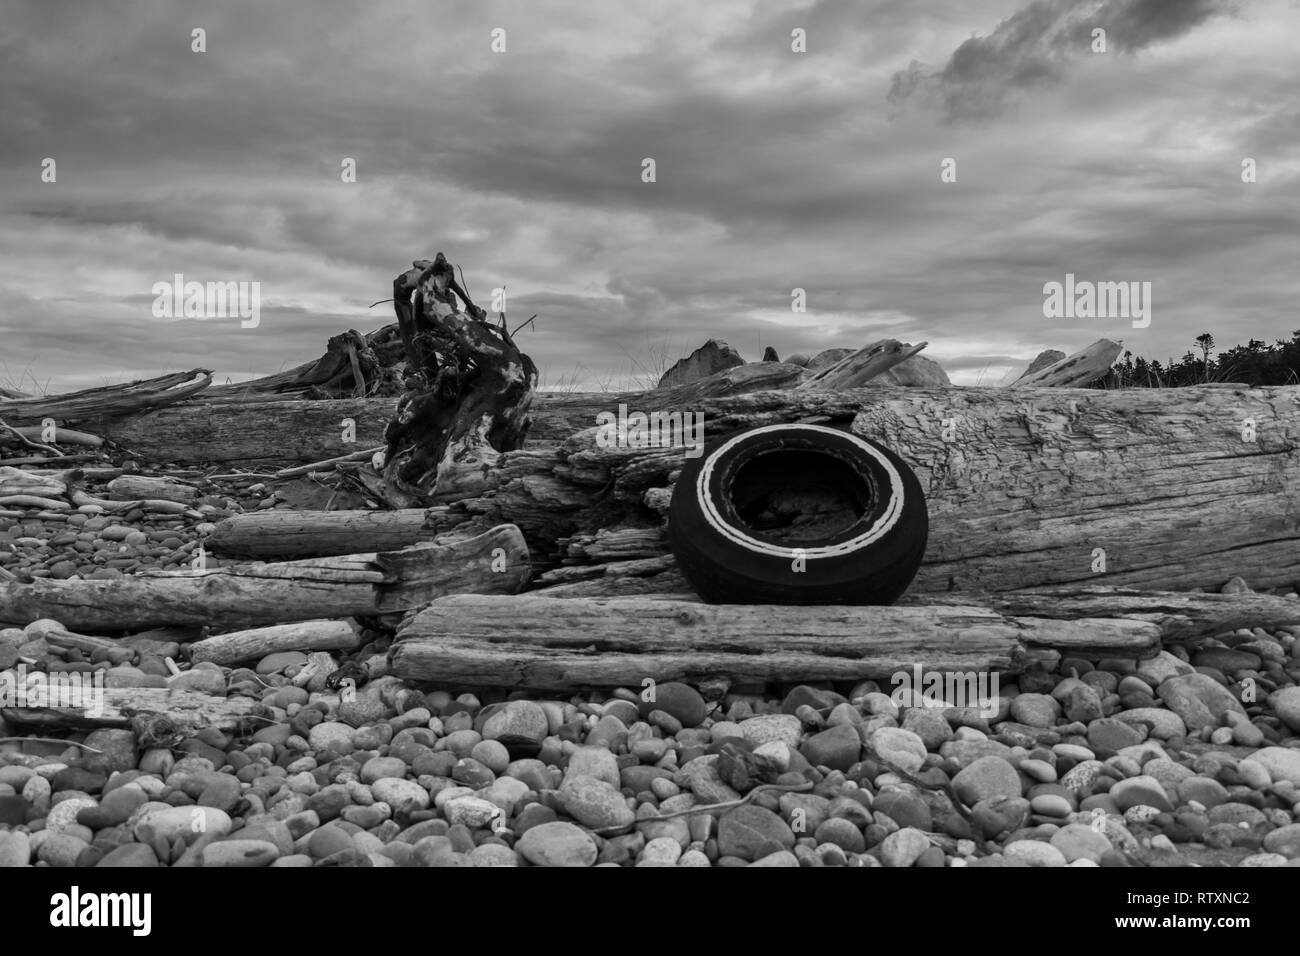 An Old Tire Lies Among Driftwood on West Beach, Whidbey Island Washington - Stock Image